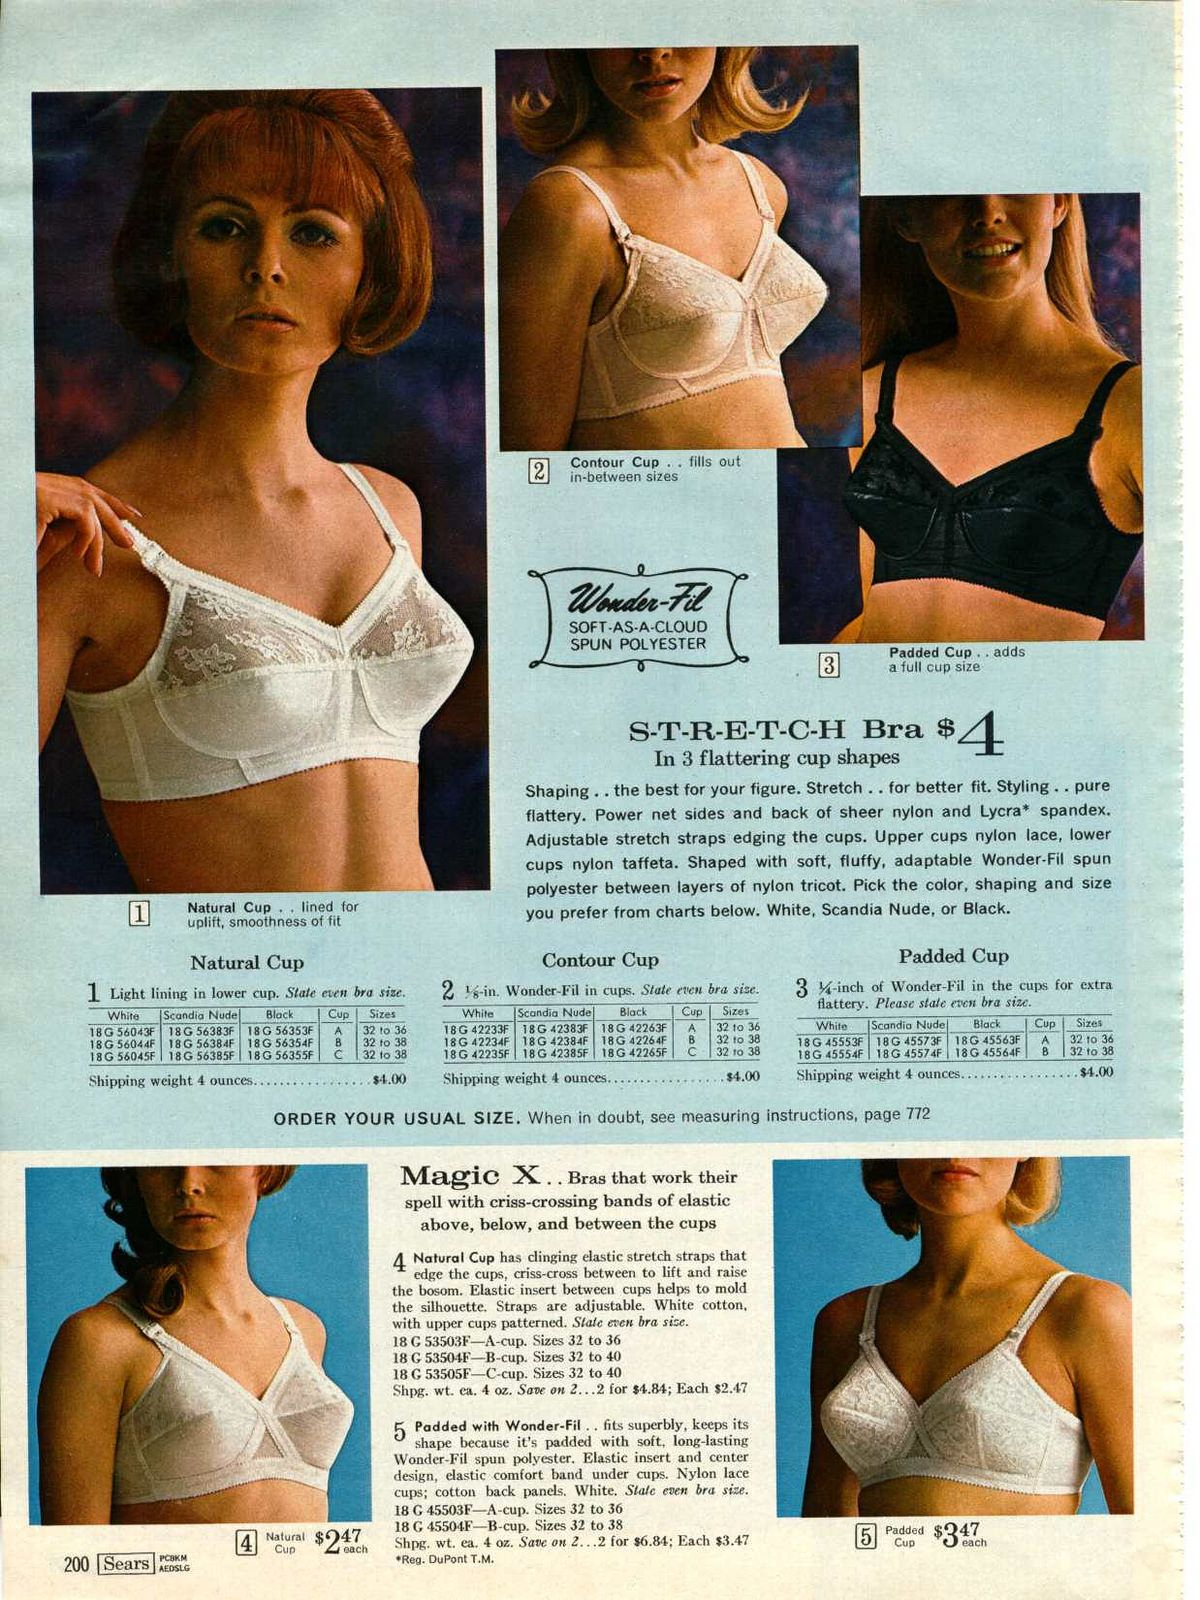 64b416c617d70 somebody should start a petition to bring back pointy bras. let me be the  first to sign that list.